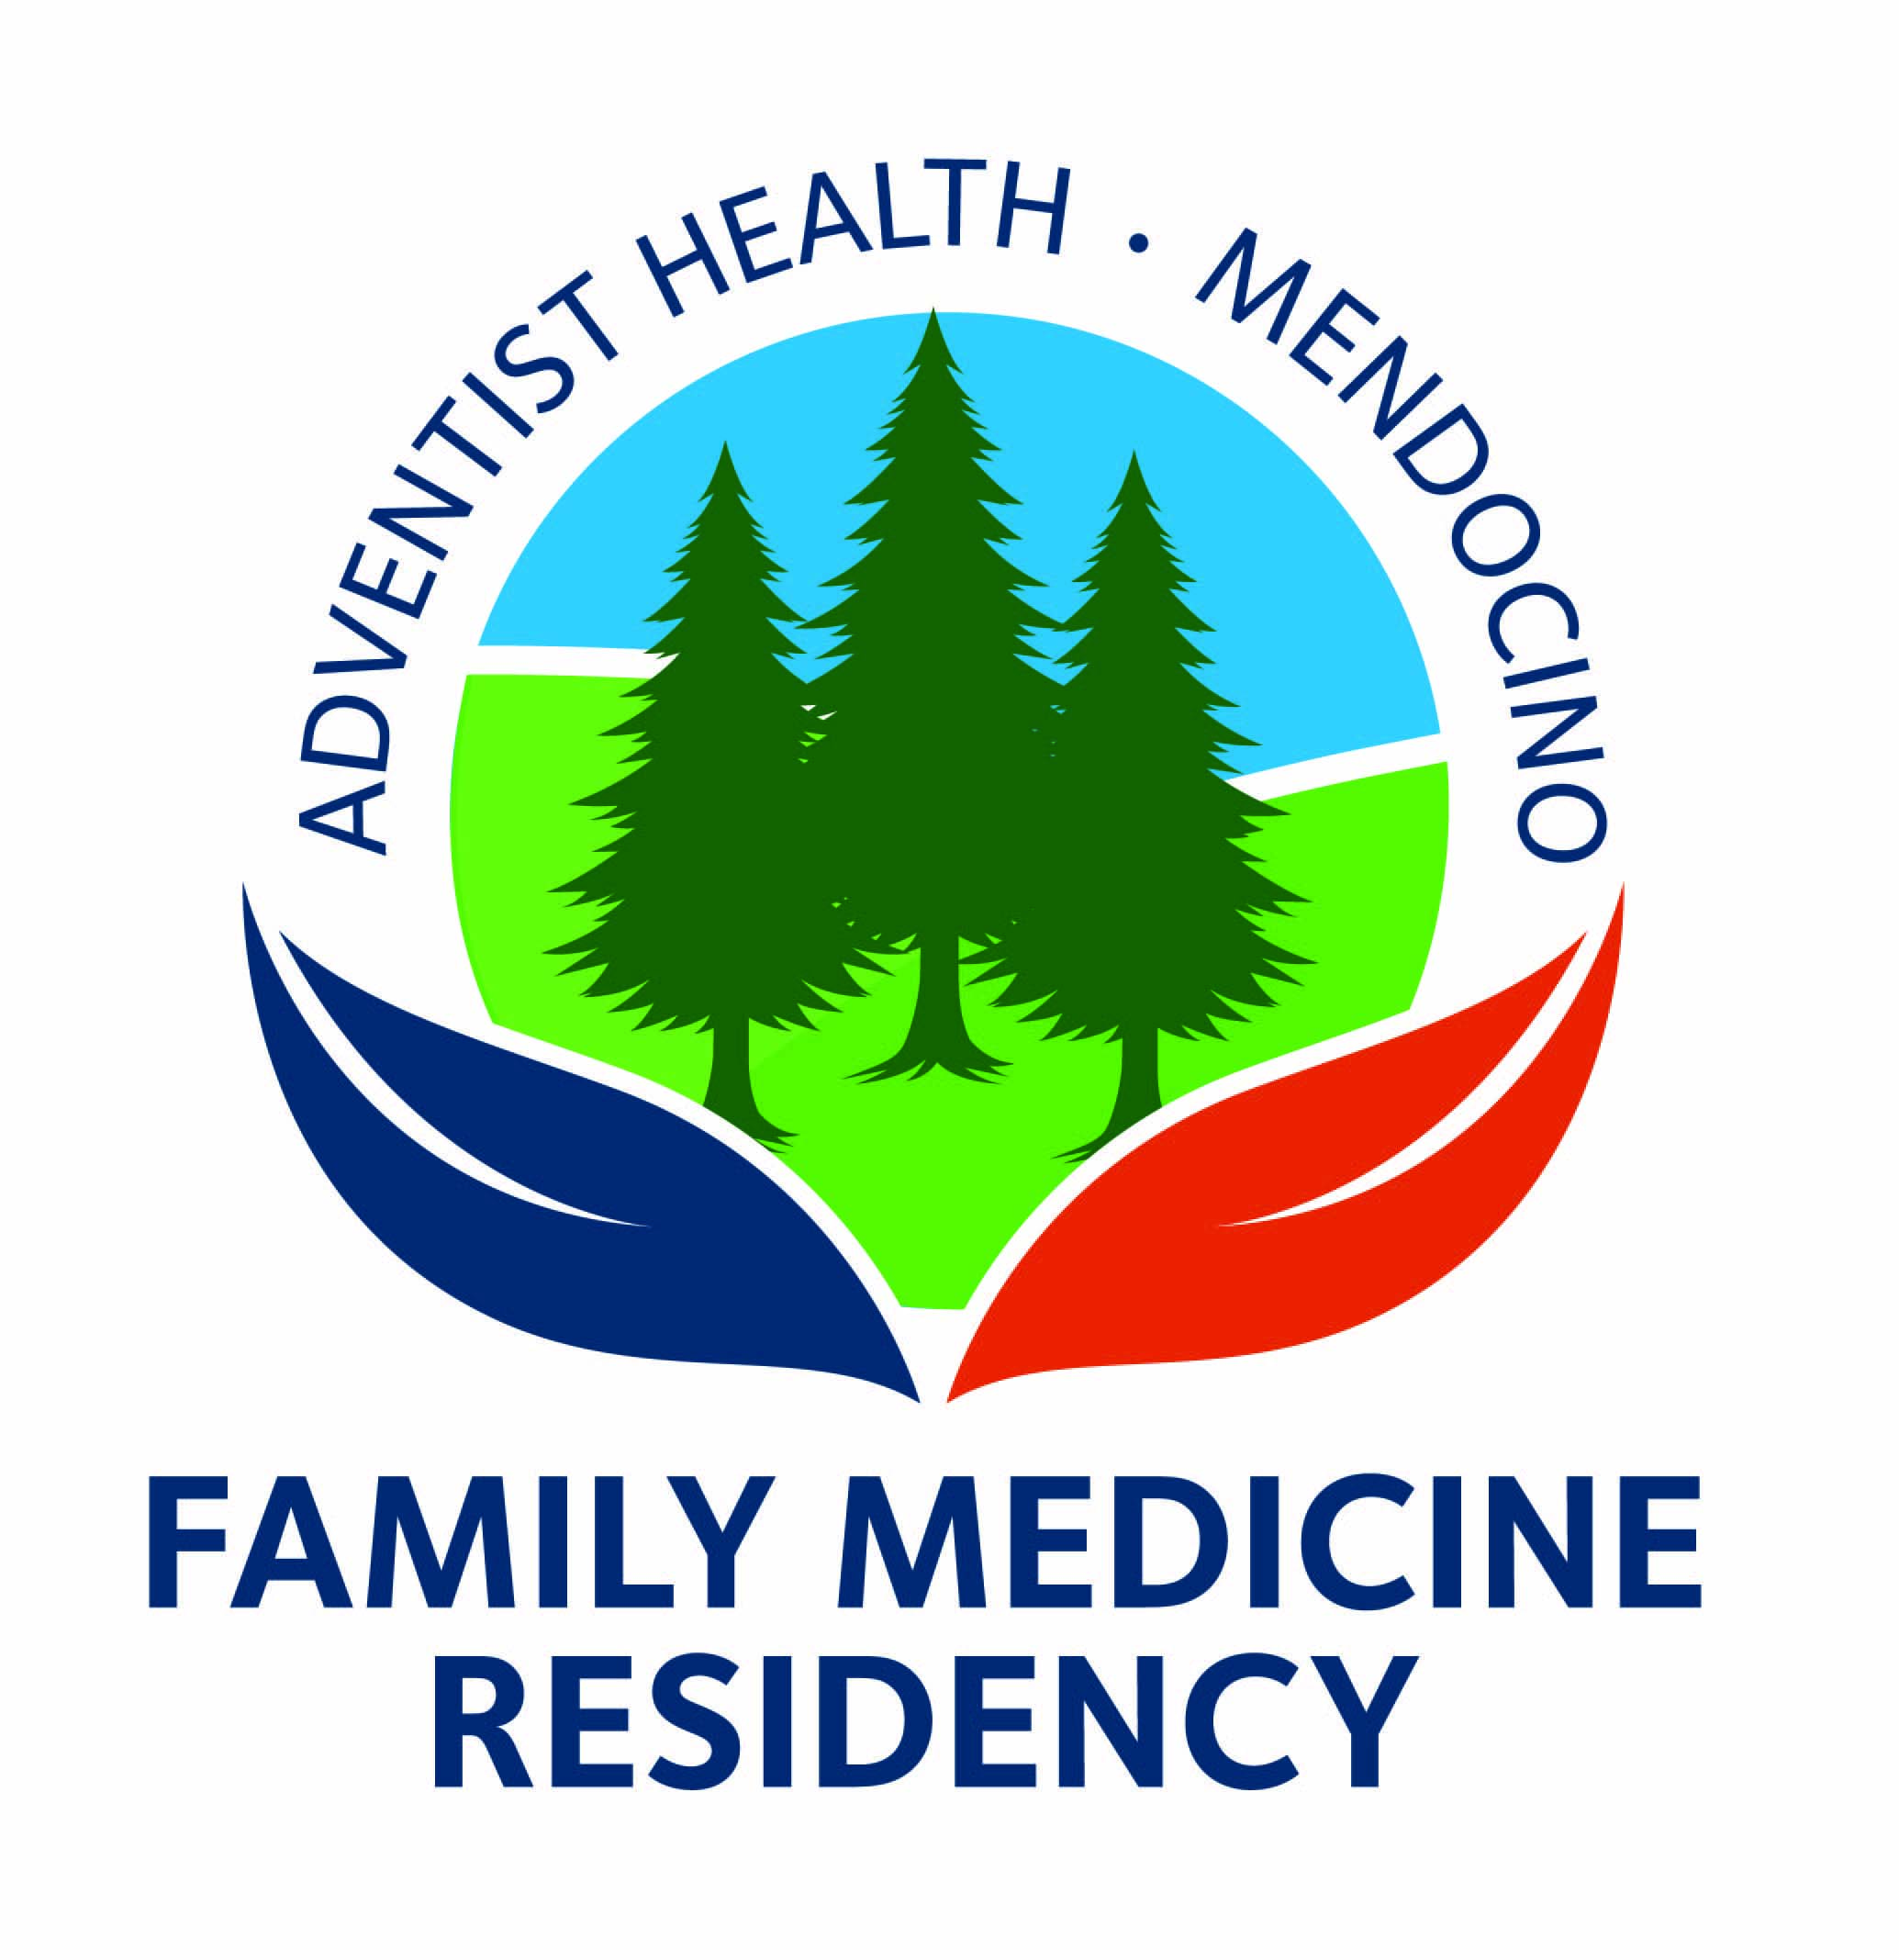 Adventist Health Ukiah Valley Family Medicine Residency logo with three trees framed by two leaves beneath them